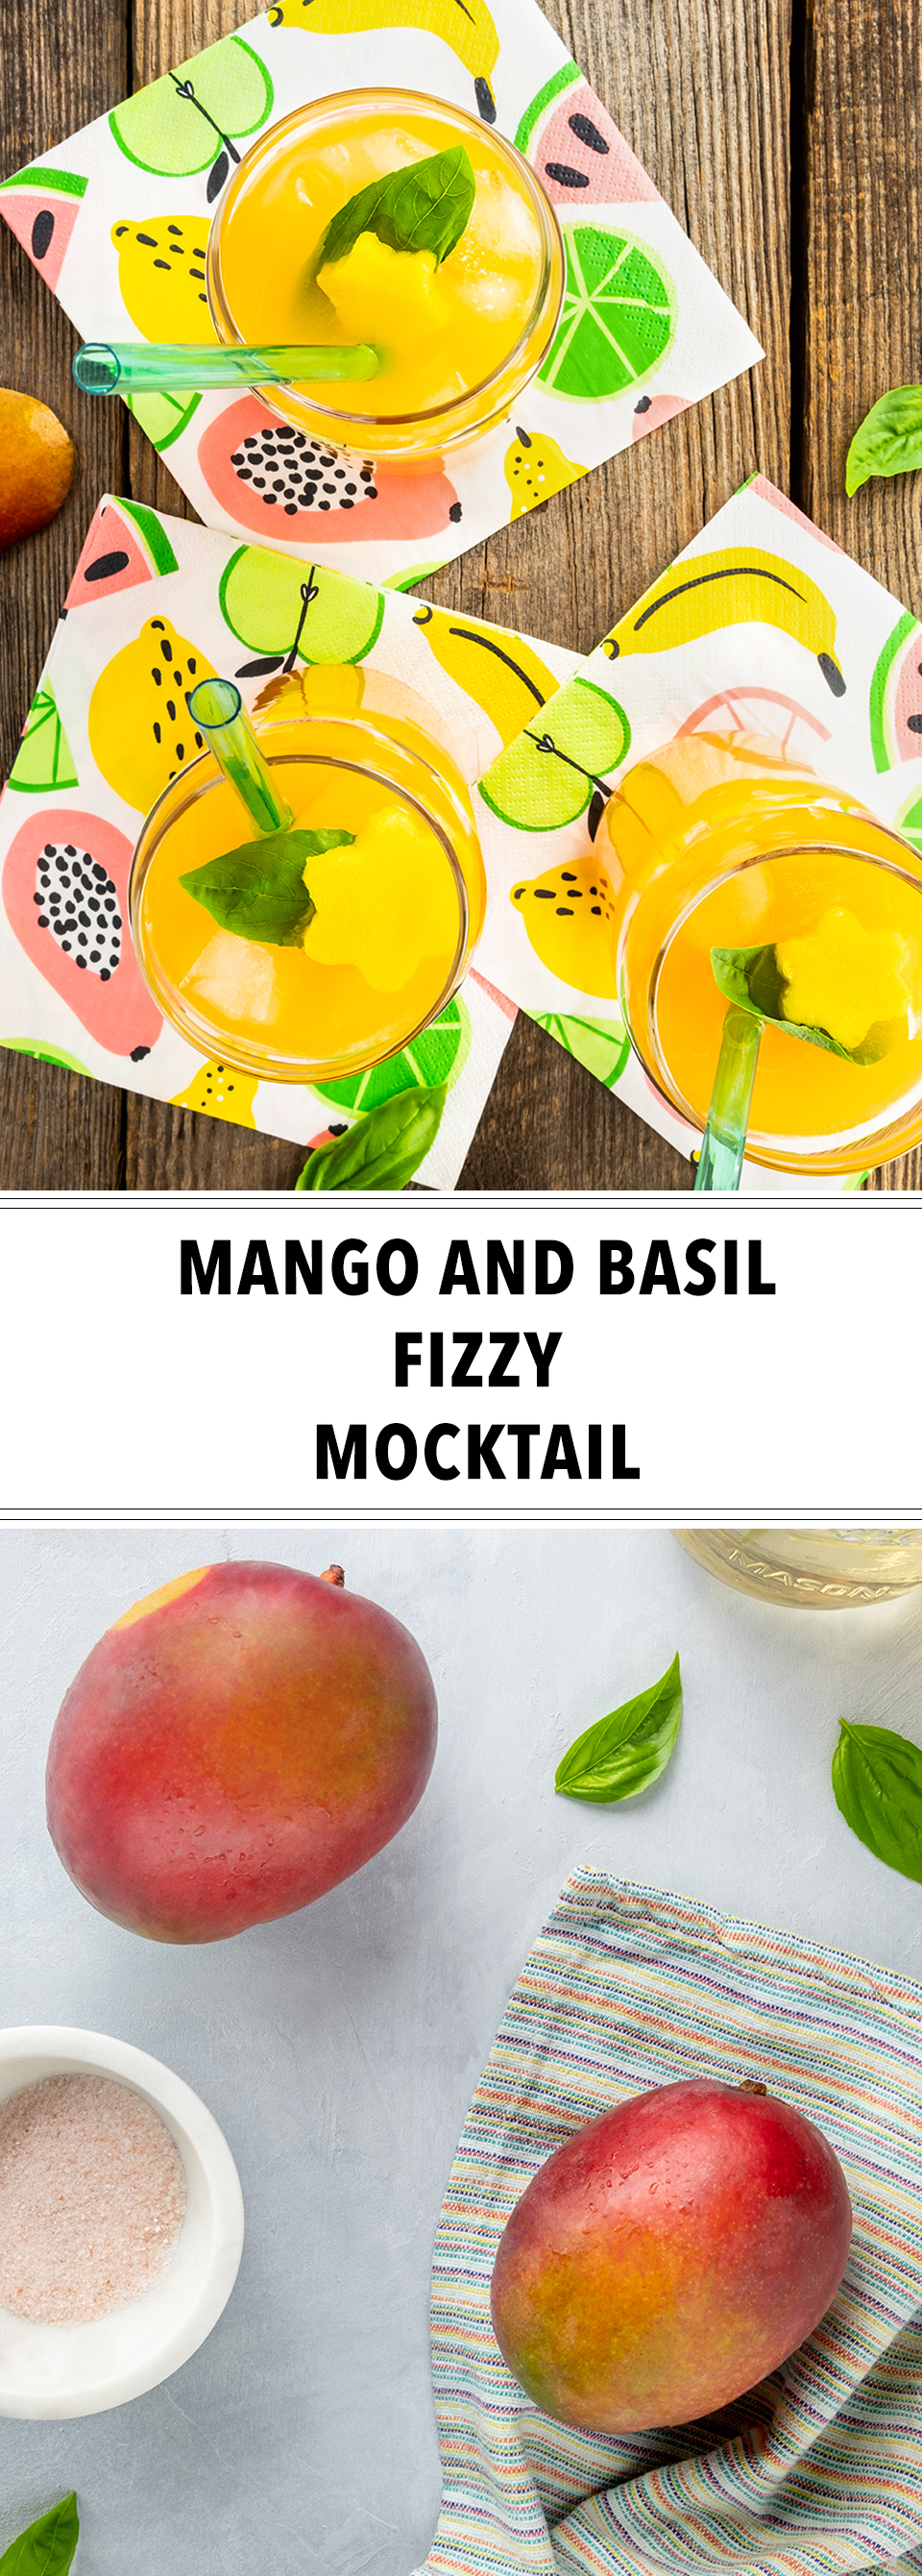 JodiLoves_Retouching_Brilliant_Pixel_Imaging-Mango-Basil-Fizzy-Mocktail.jpg